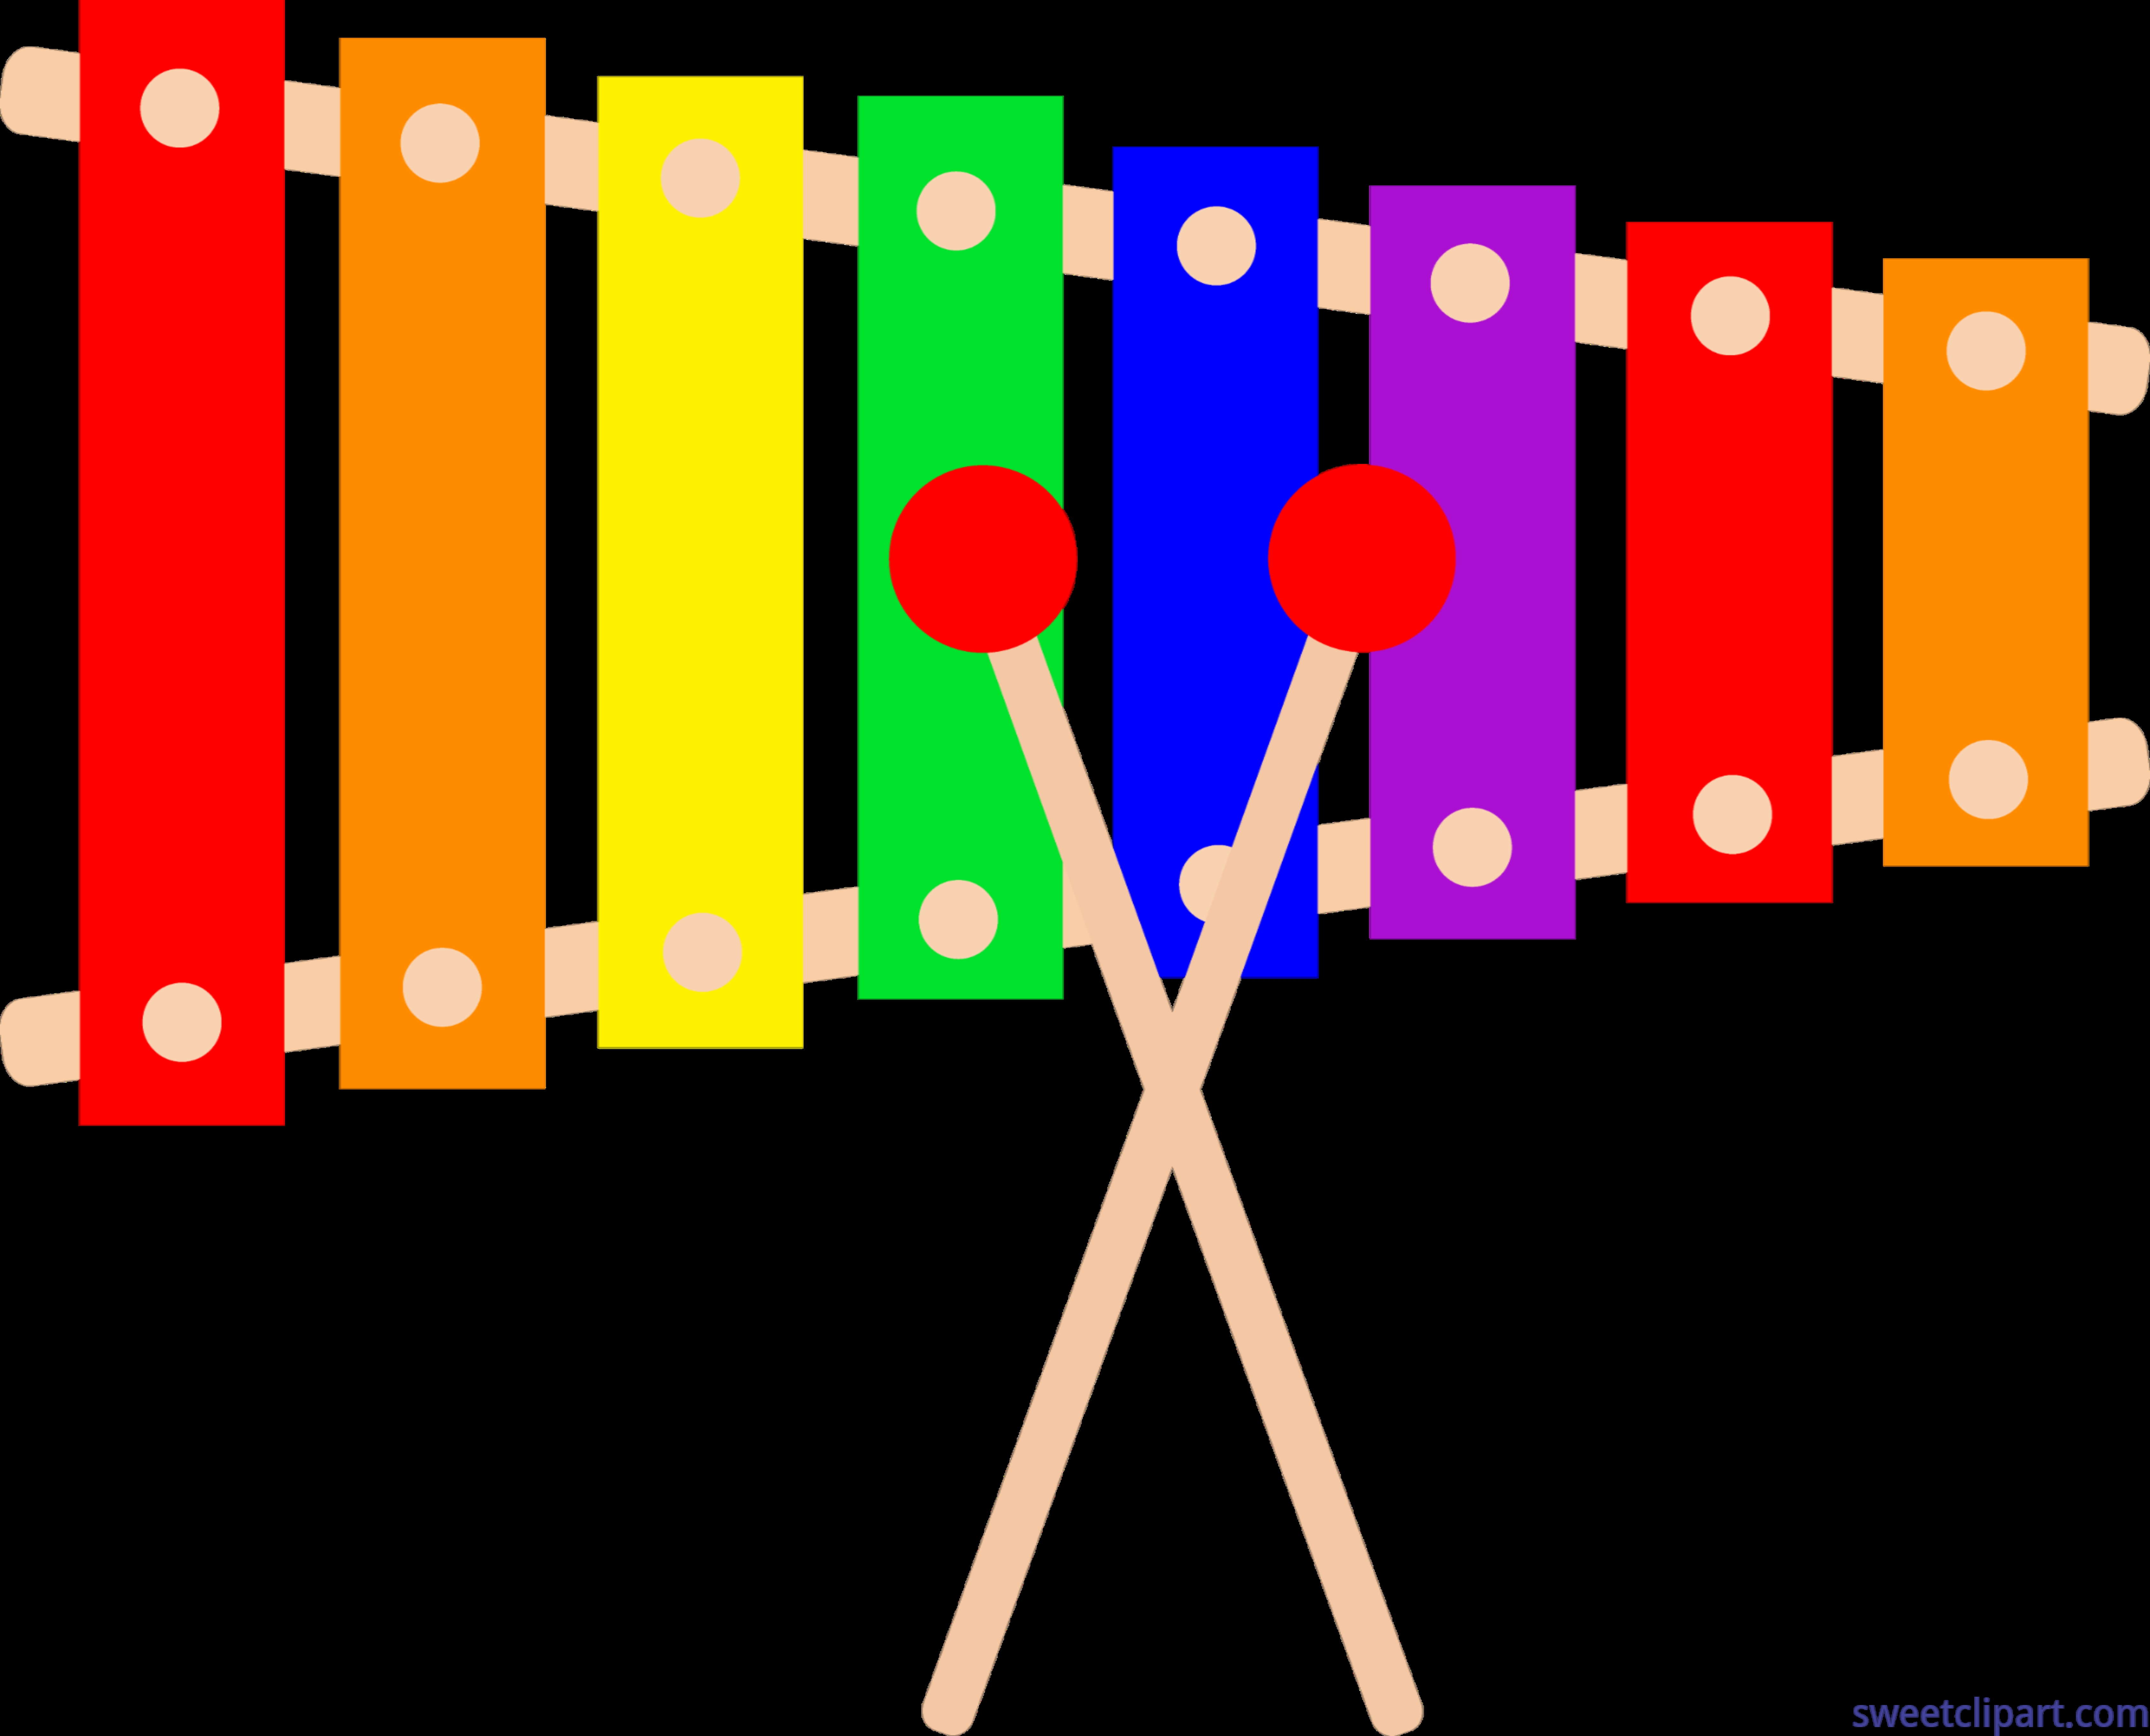 6729x5433 New Xylophone Clipart Design